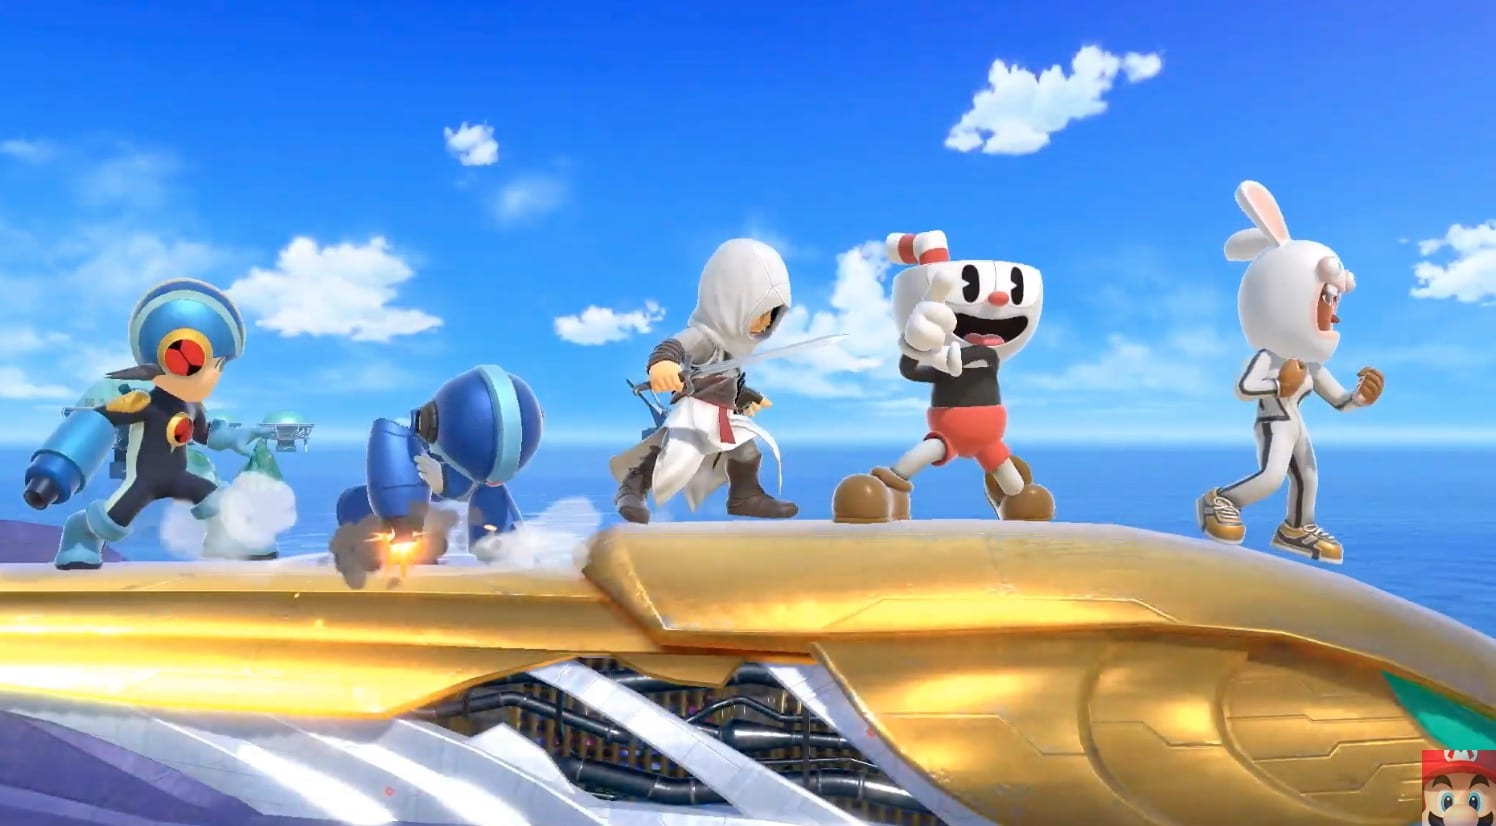 mii fighter costumes, altair, super smash bros. ultimate, rabbids, cuphead